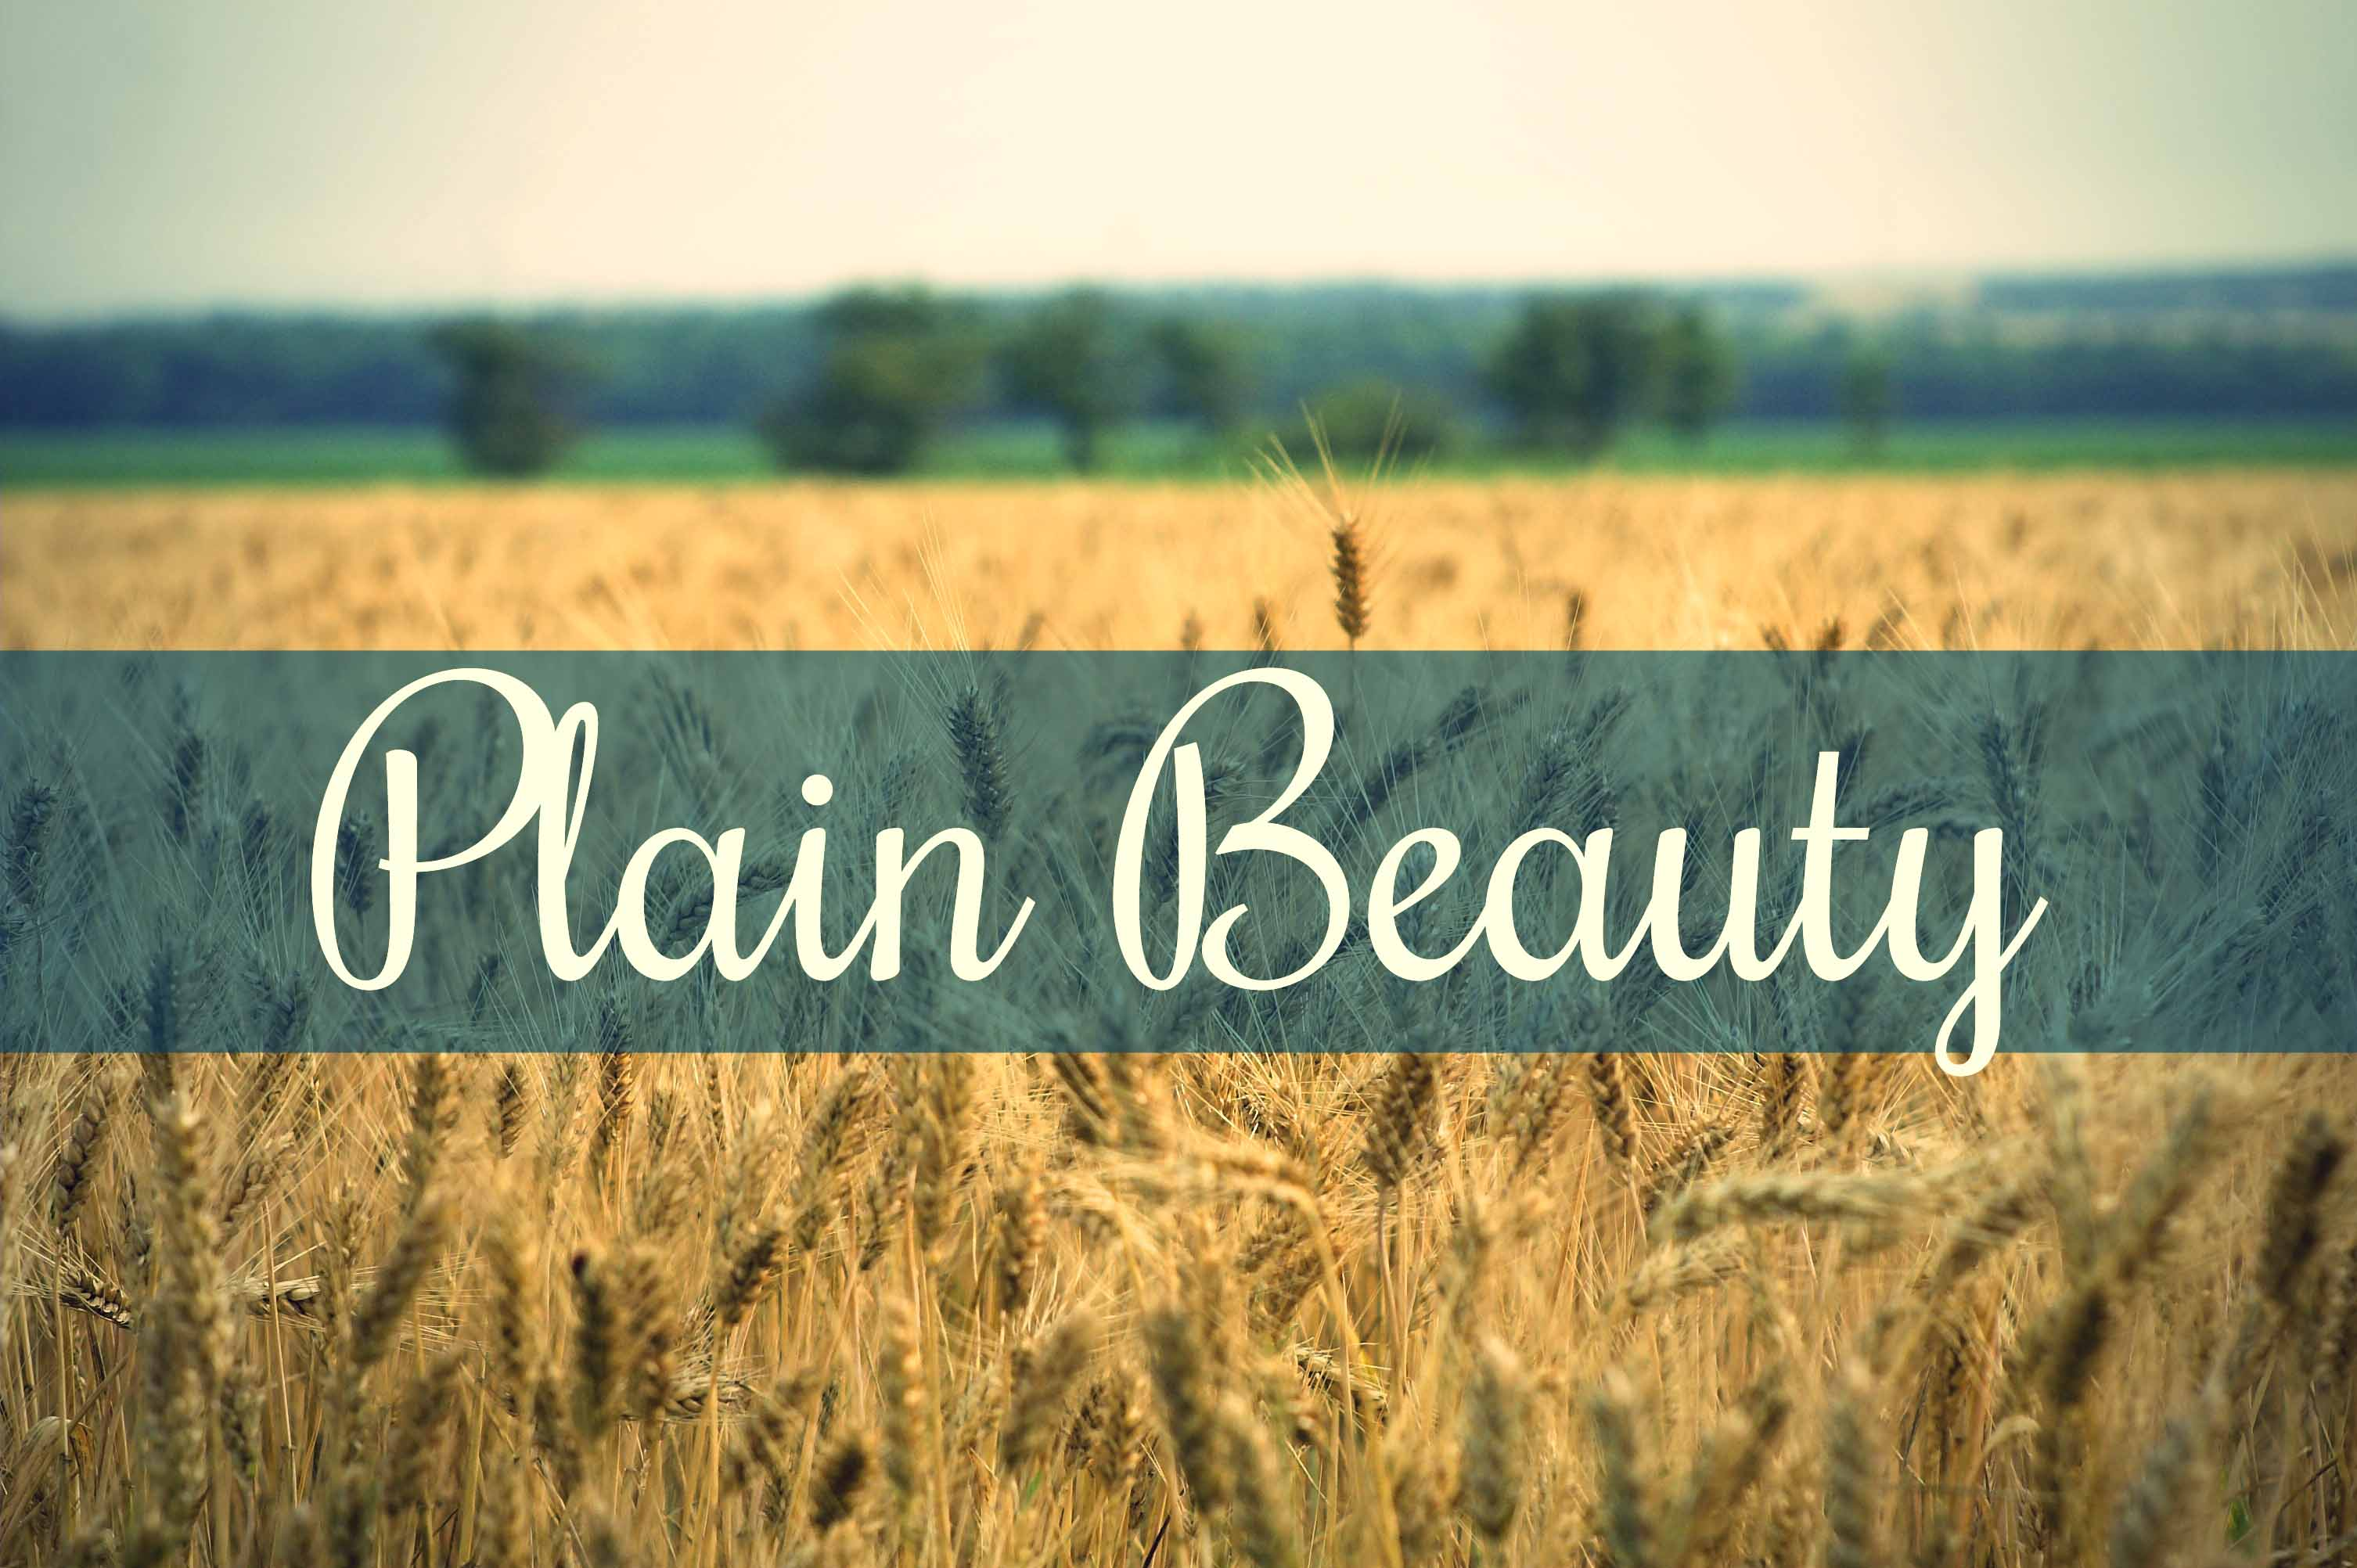 swf-plainbeauty